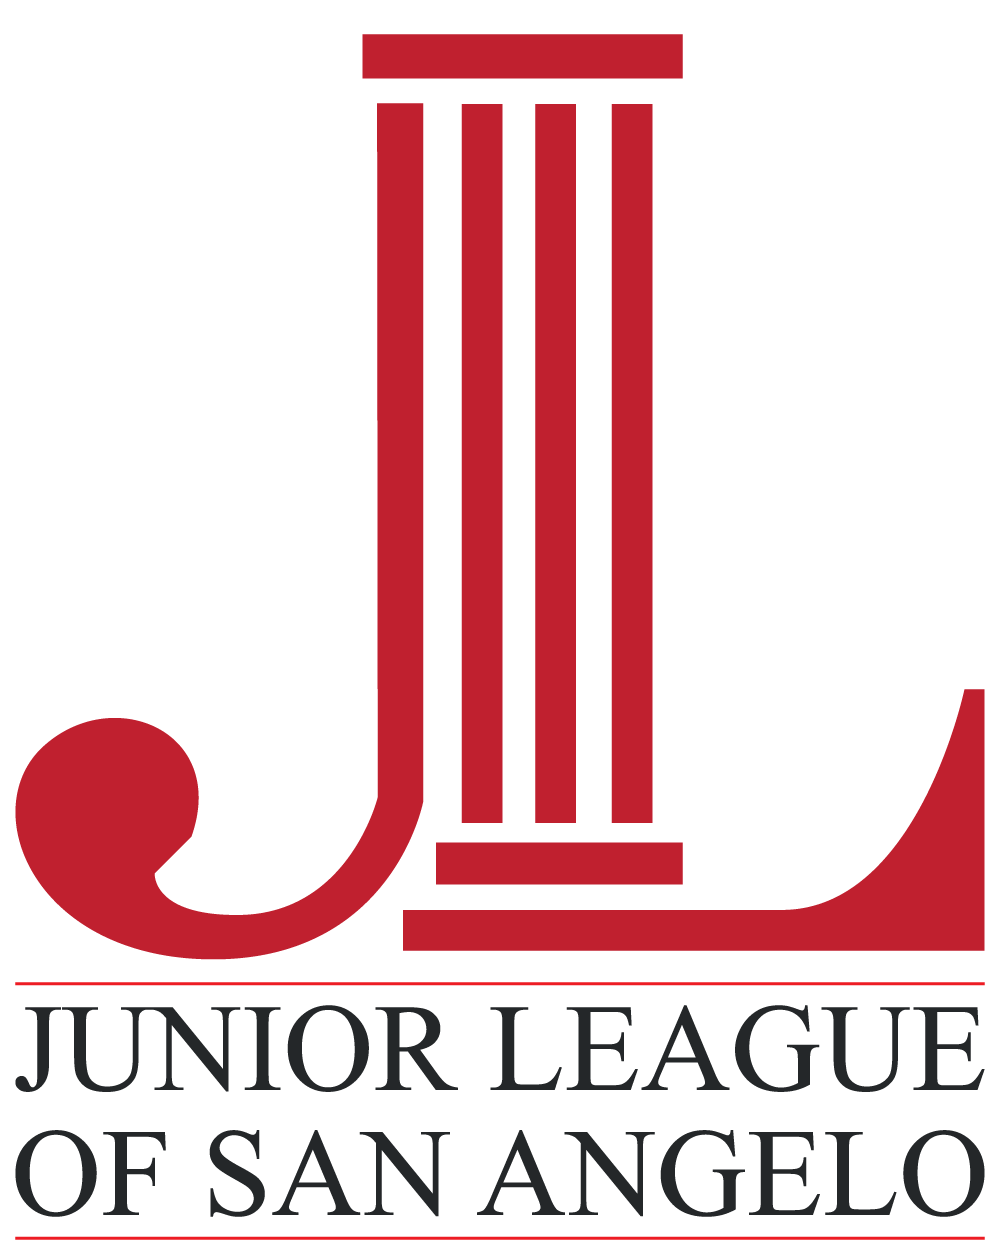 San Angelo Junior League